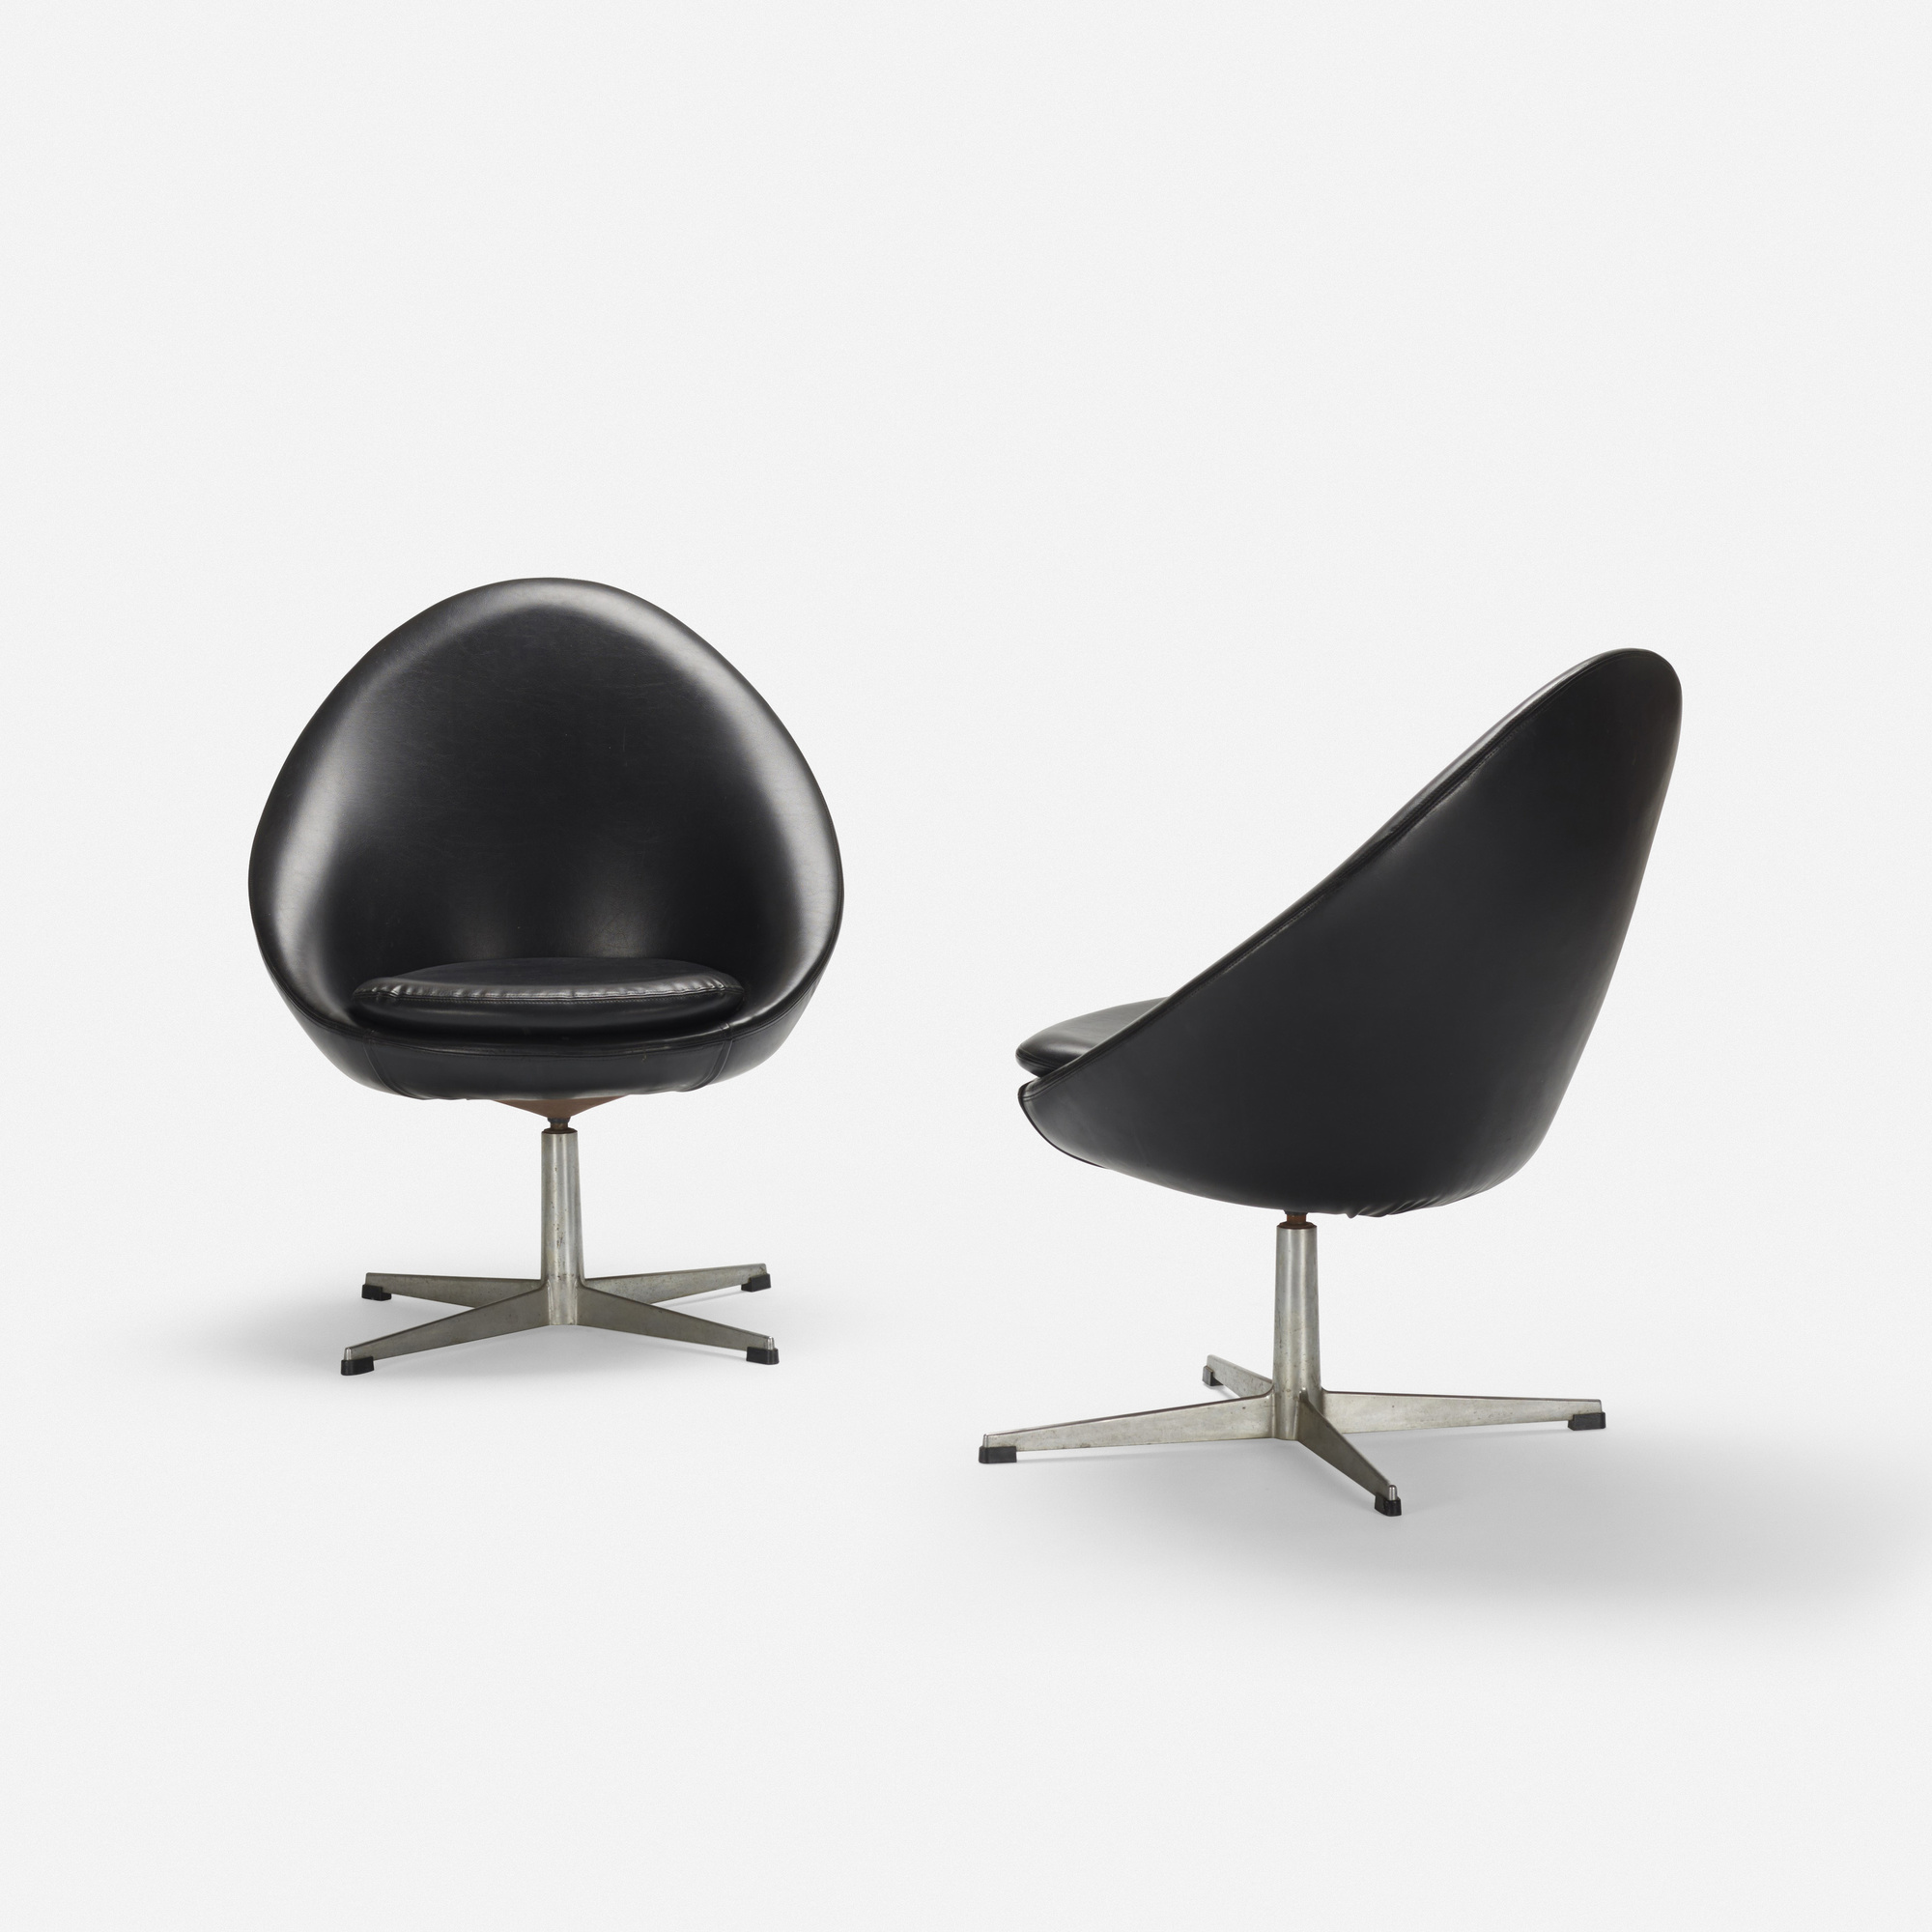 ab swivel chair set of 4 592 overman chairs pair mass modern day 2 10 3